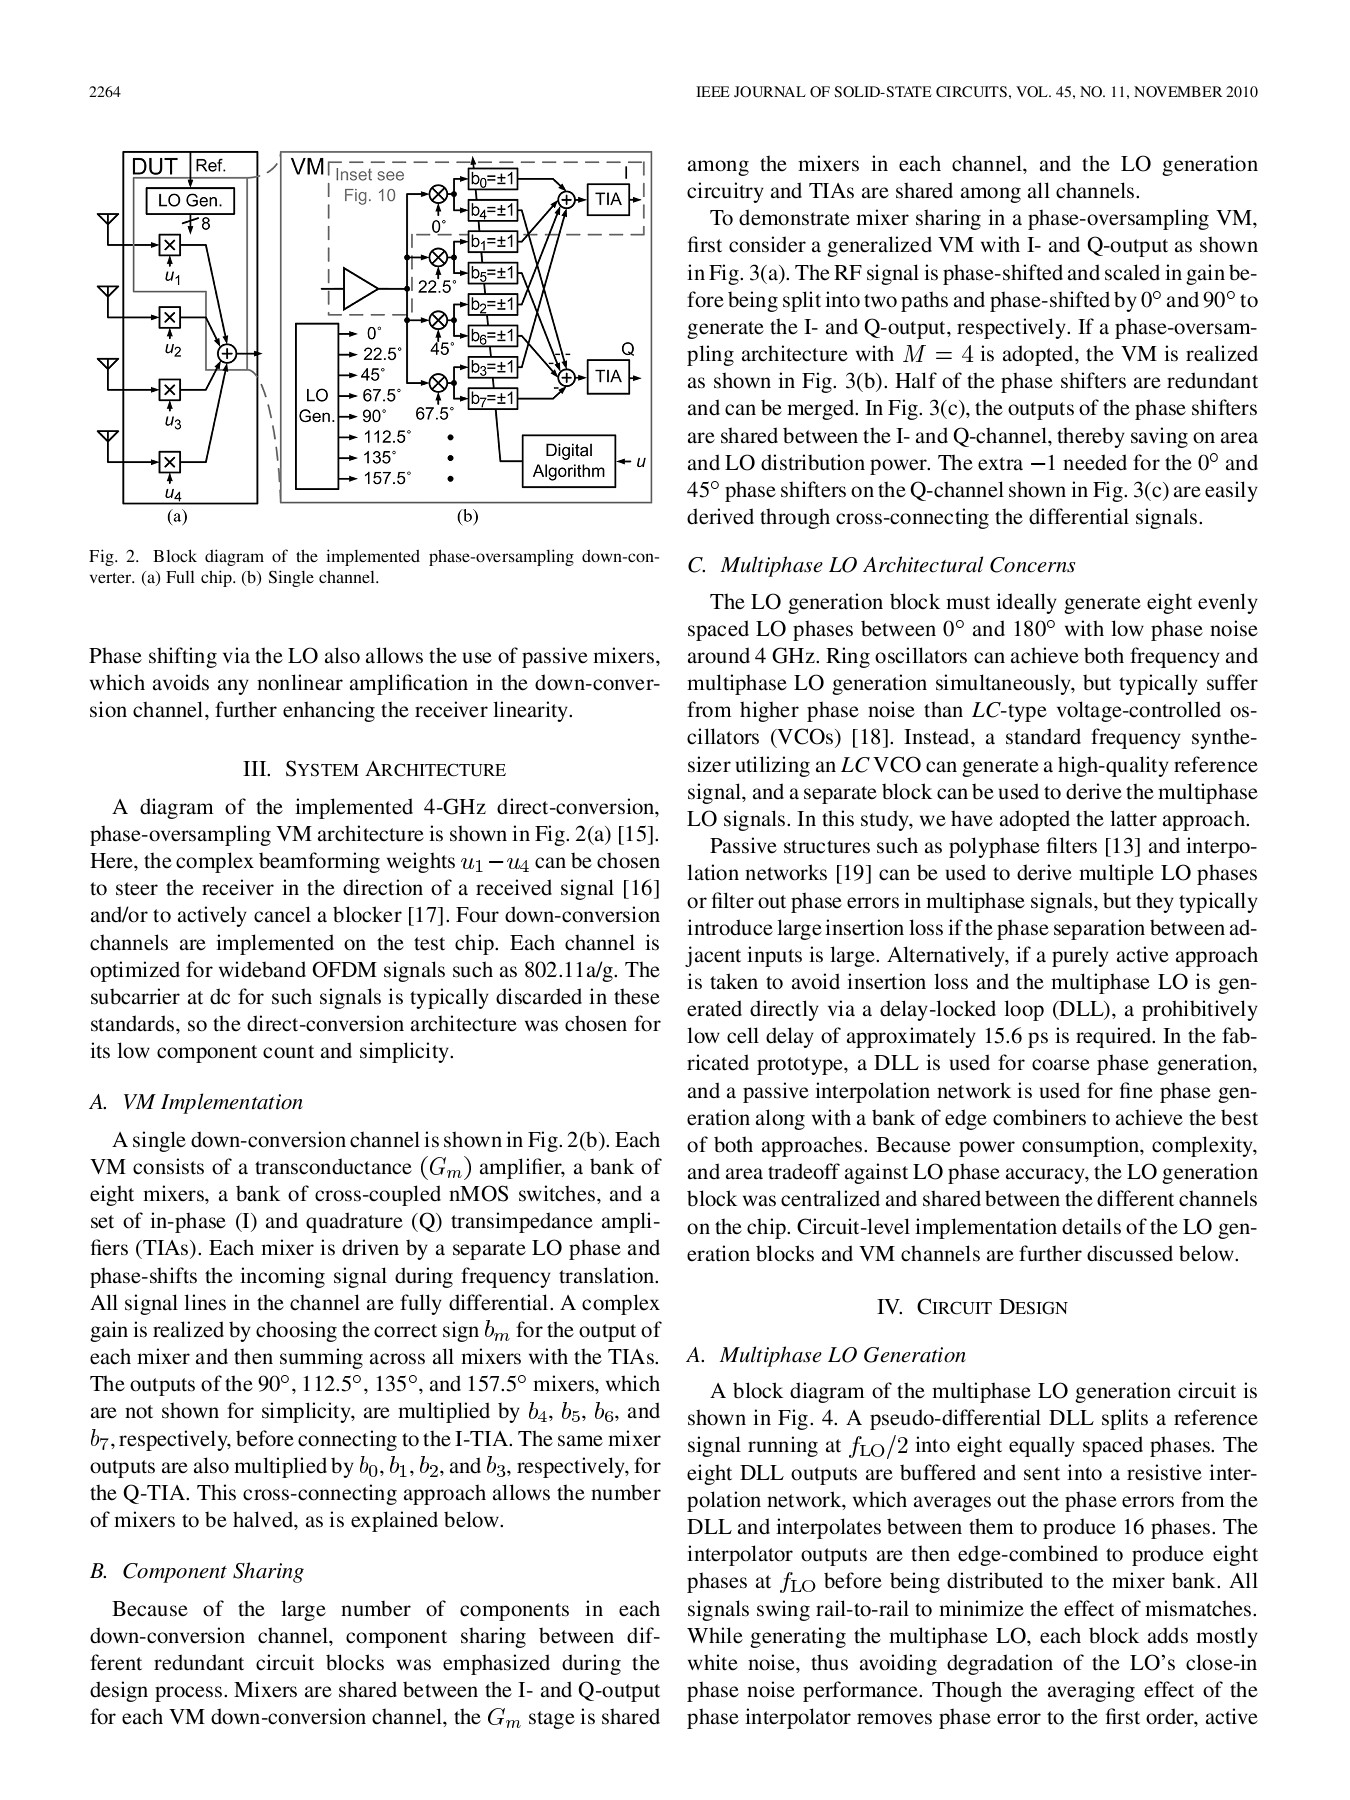 hight resolution of 2262 ieee journal of solid state circuits vol 45 no 11 november 2010 a four channel beamforming down converter in 90 nm cmos utilizing phase